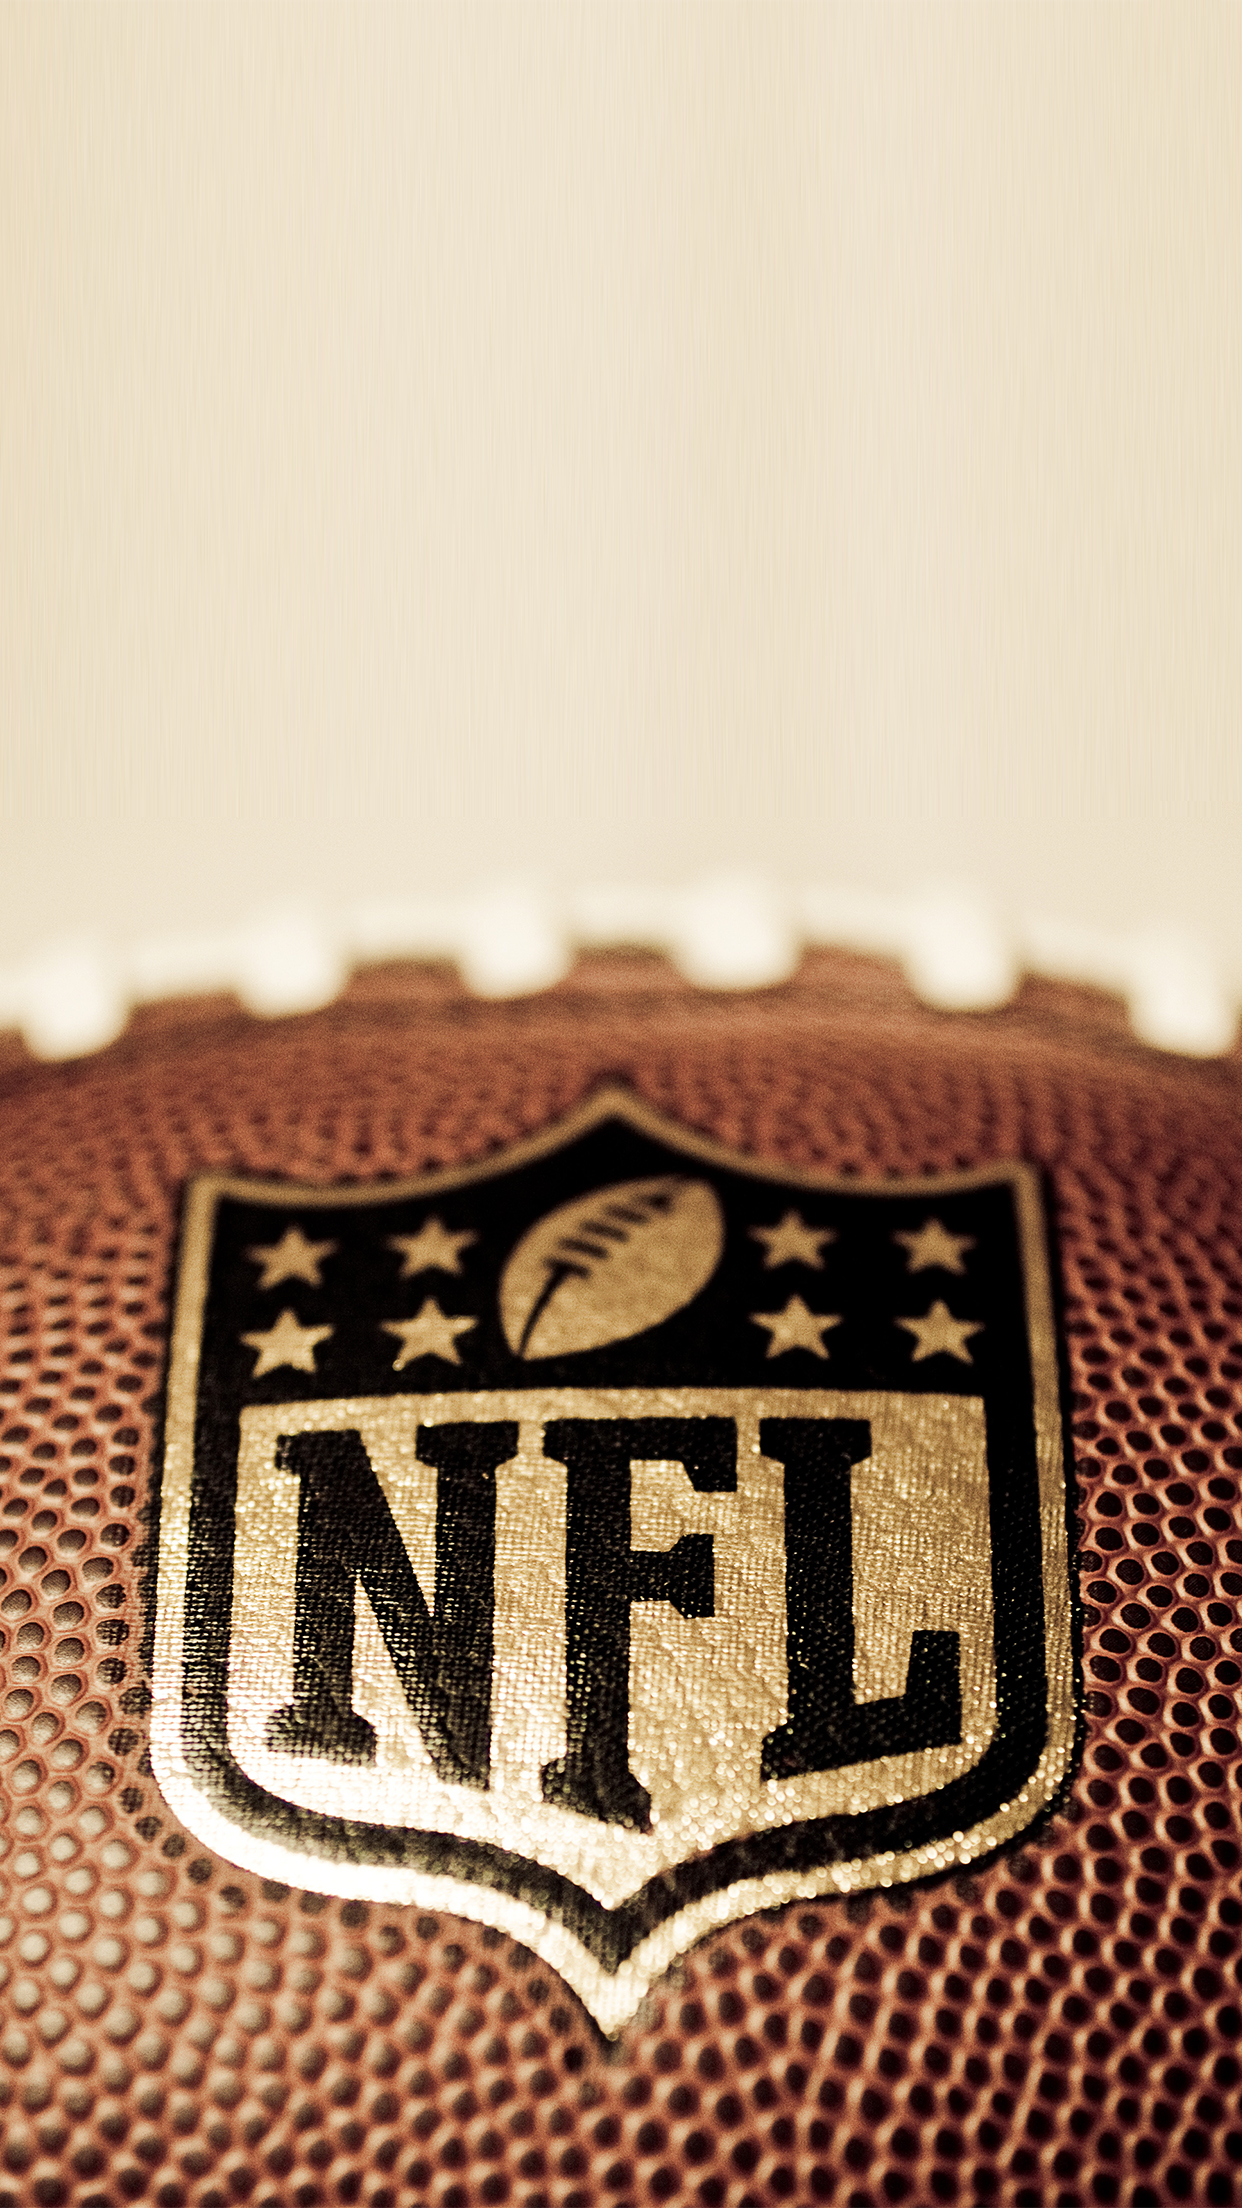 American Football Nfl Wallpaper For Iphone 11 Pro Max X 8 7 6 Free Download On 3wallpapers